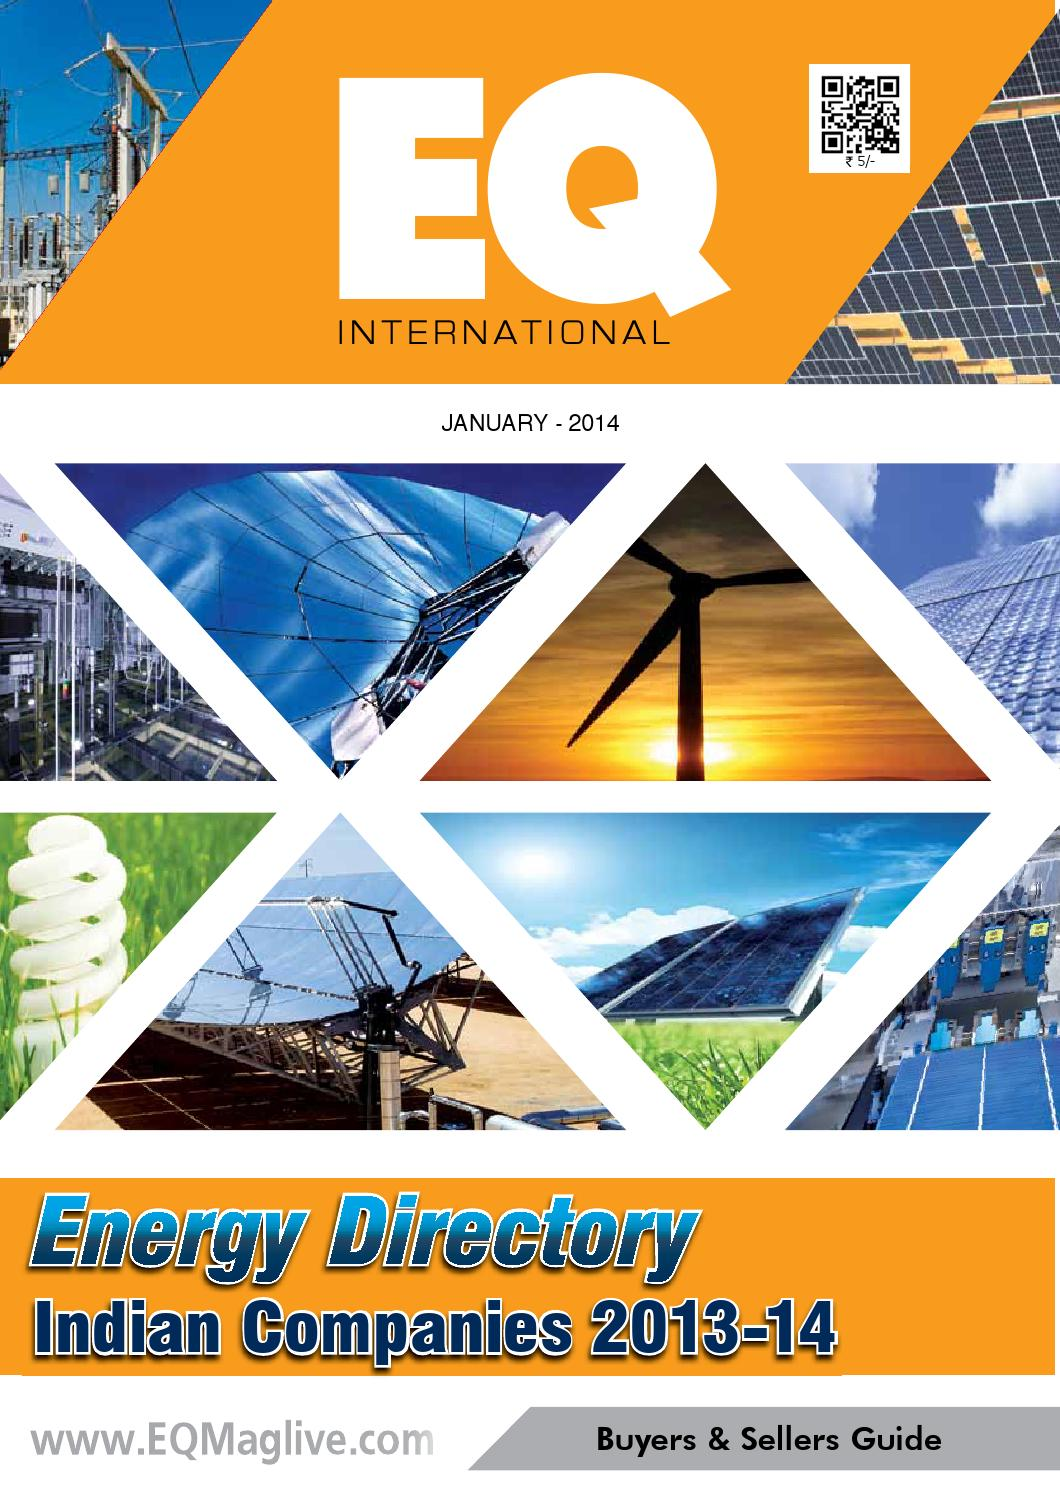 Eq Renewable Energy Guide 2014 By Intl Solar Media Group Issuu Single Side Copper Clad Laminate Pcb Circuit Board Ccl Alex Nld